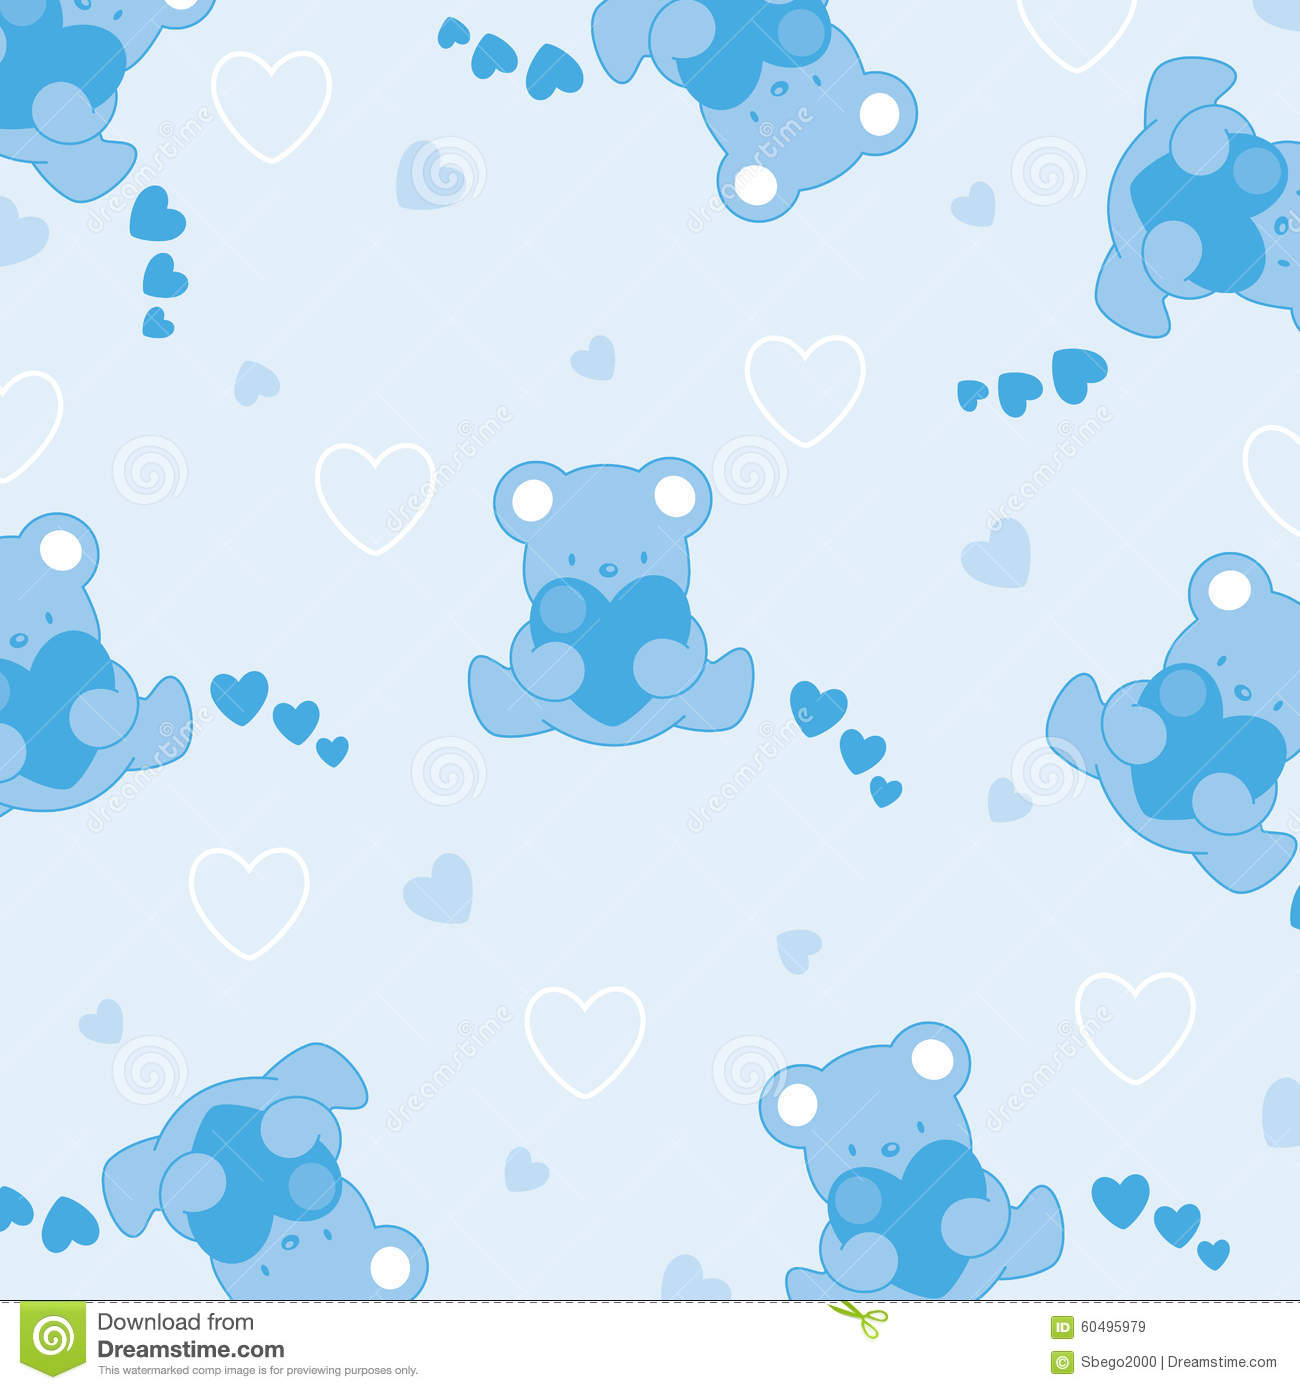 happy teddy bear wallpaper hd